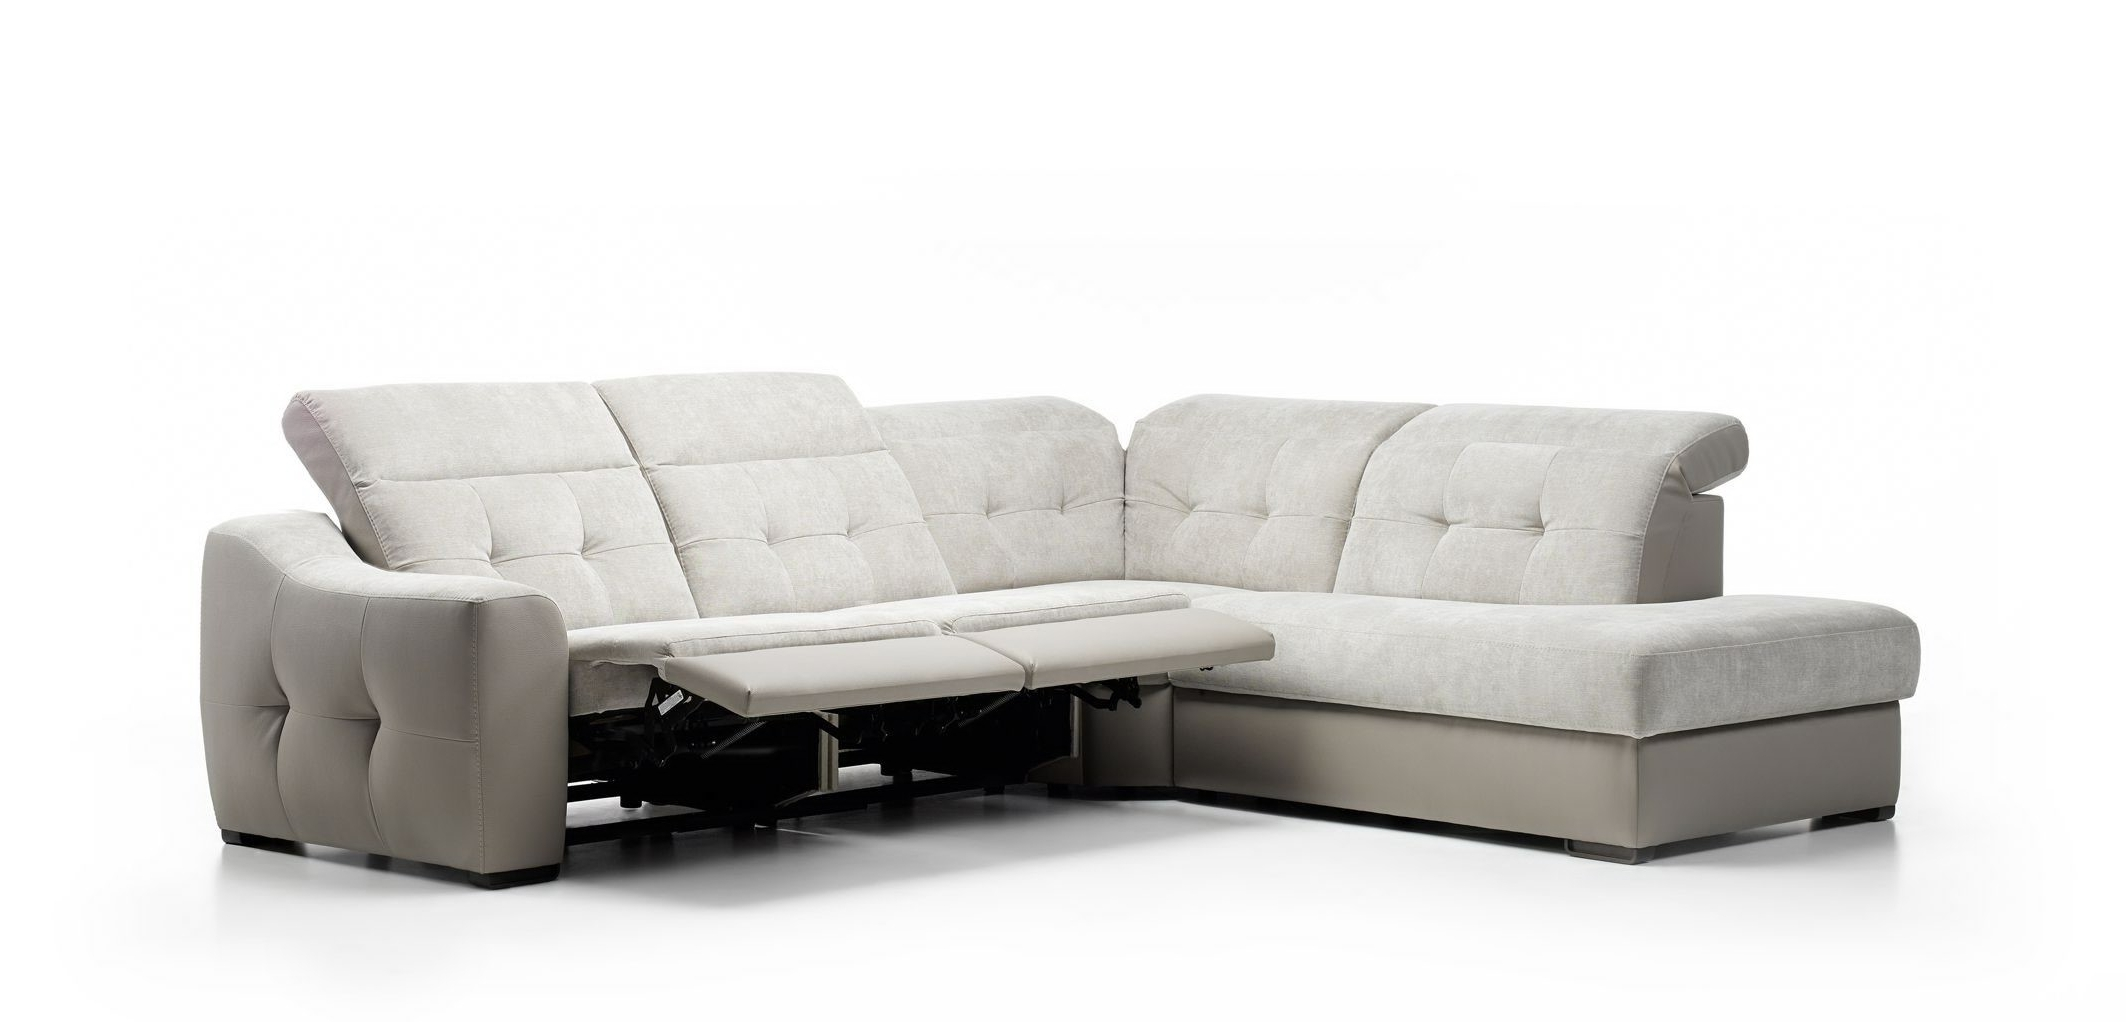 Sectional Sofas In Canada Inside 2018 Sectional Sofa Design: Modern Sectional Sofa Bed Canada (View 10 of 15)